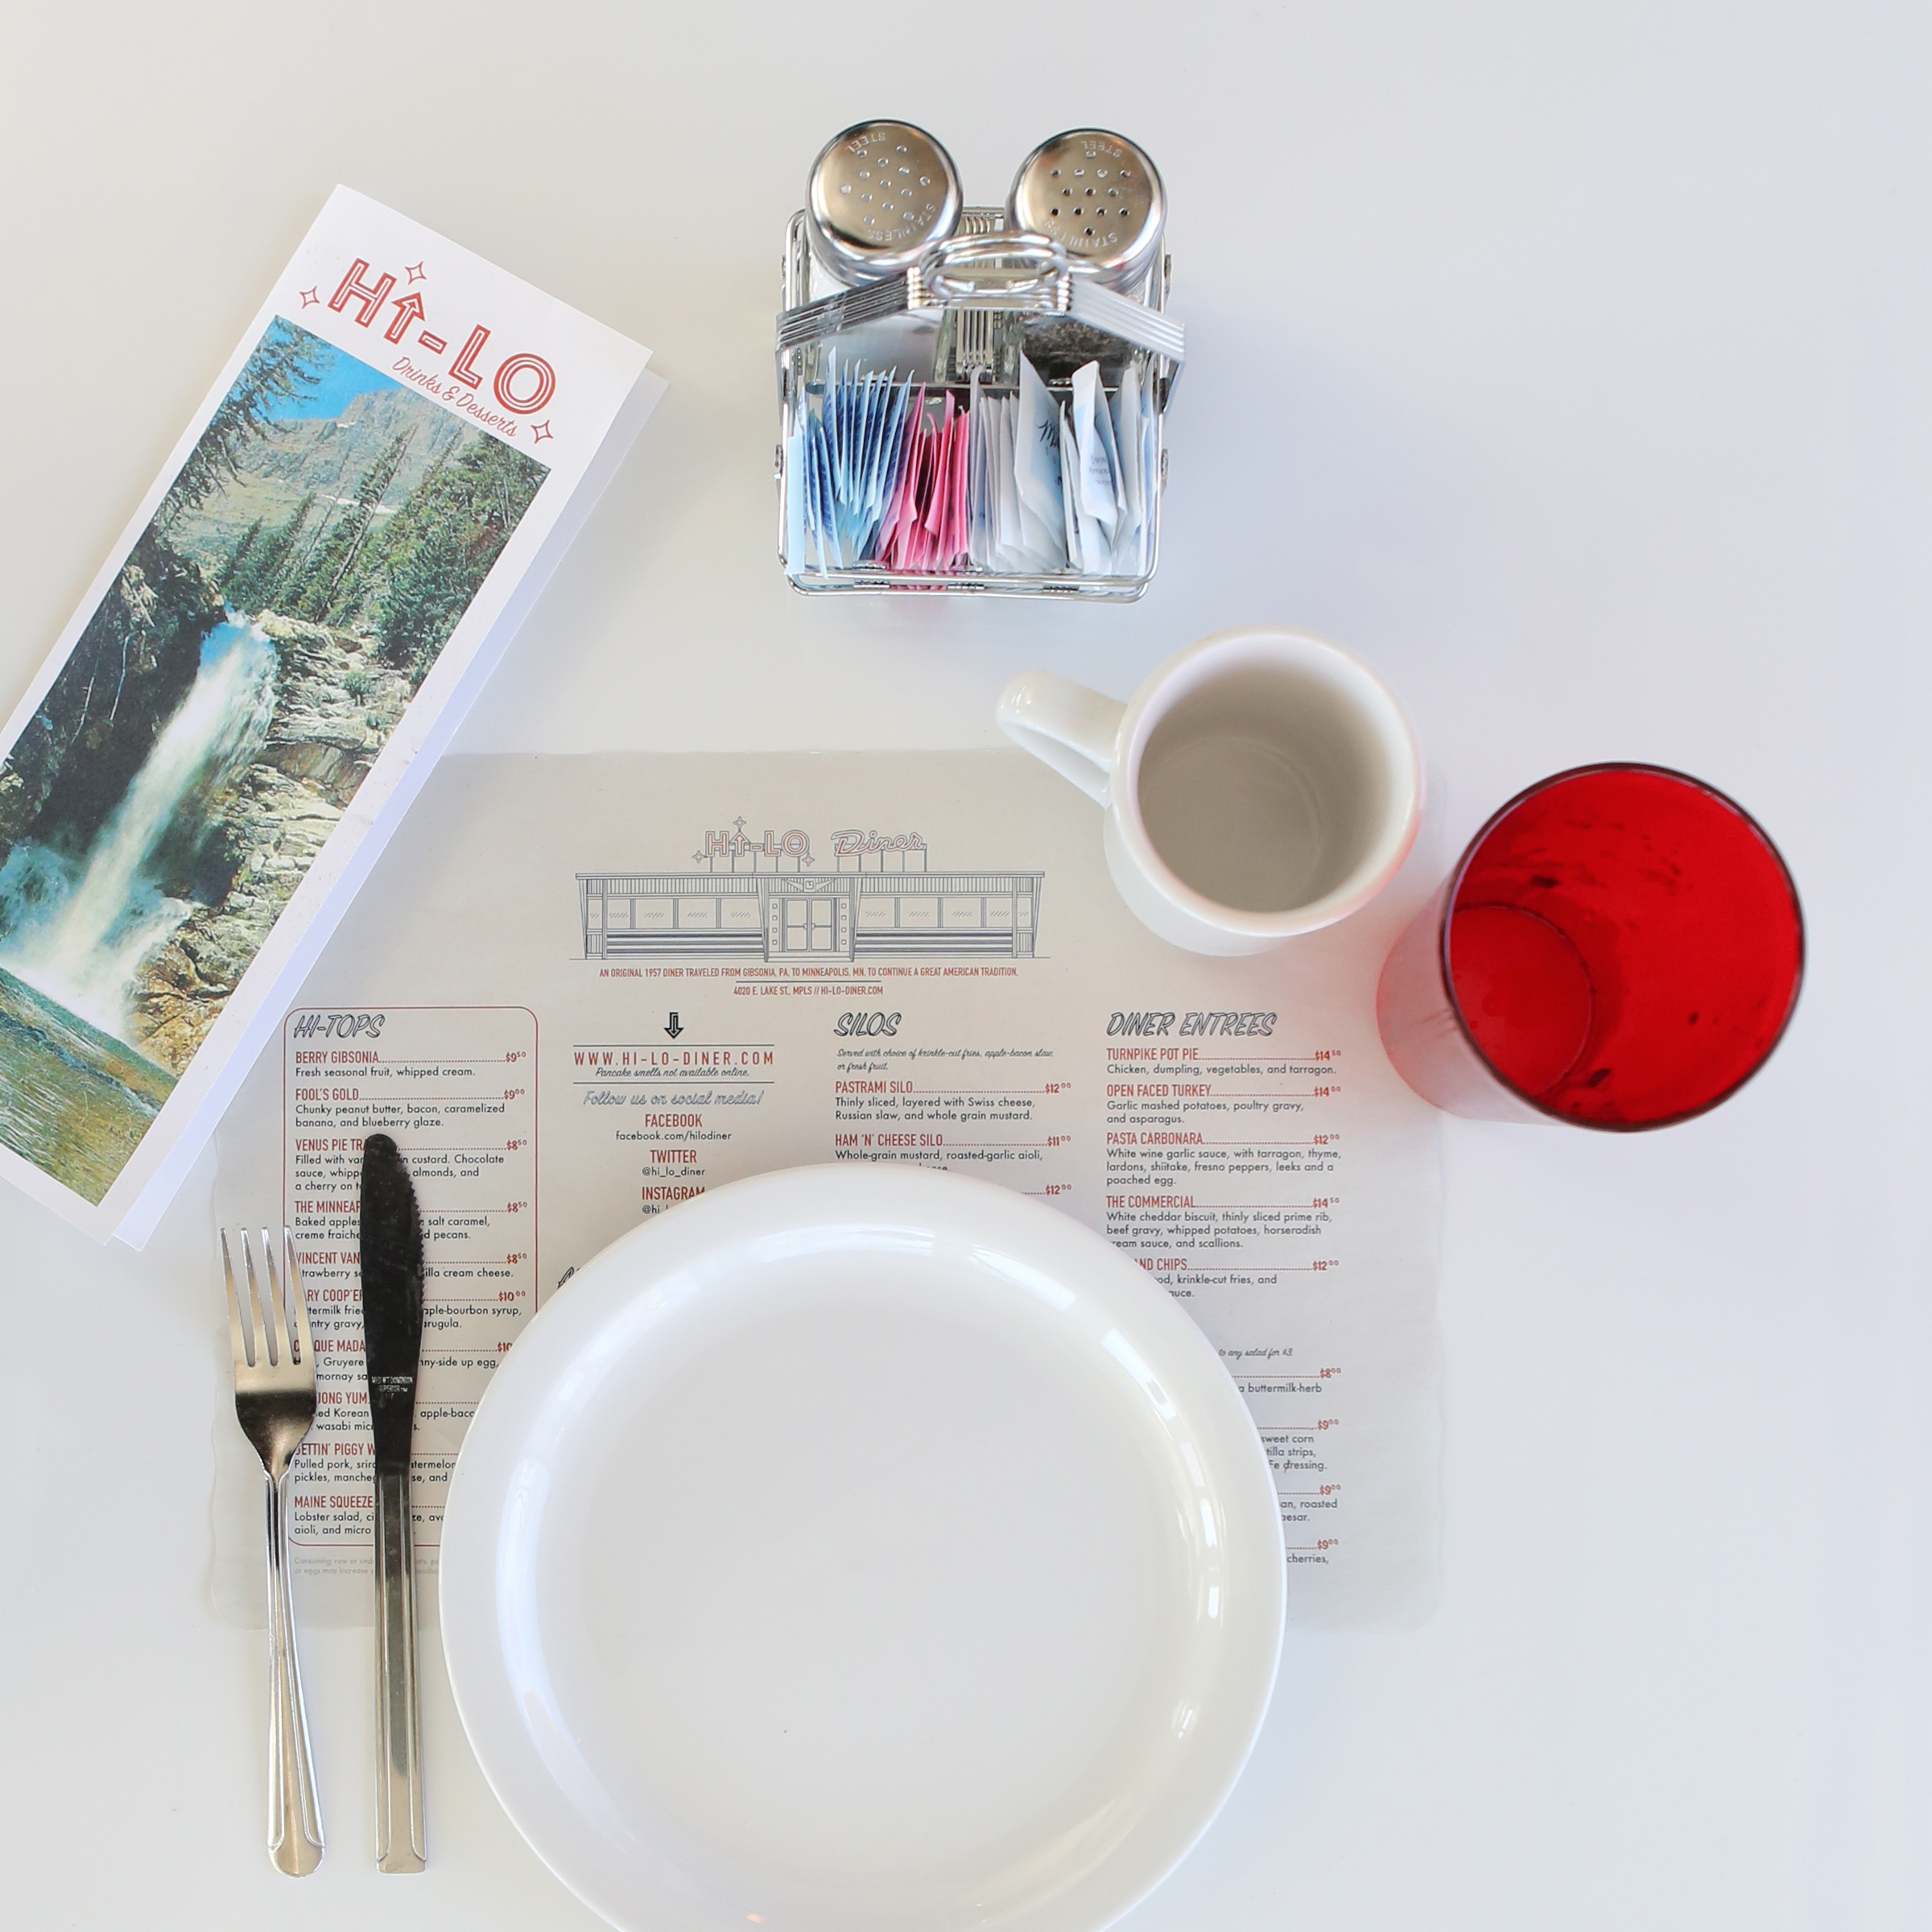 Hi-Lo Diner is ready and waiting for you.